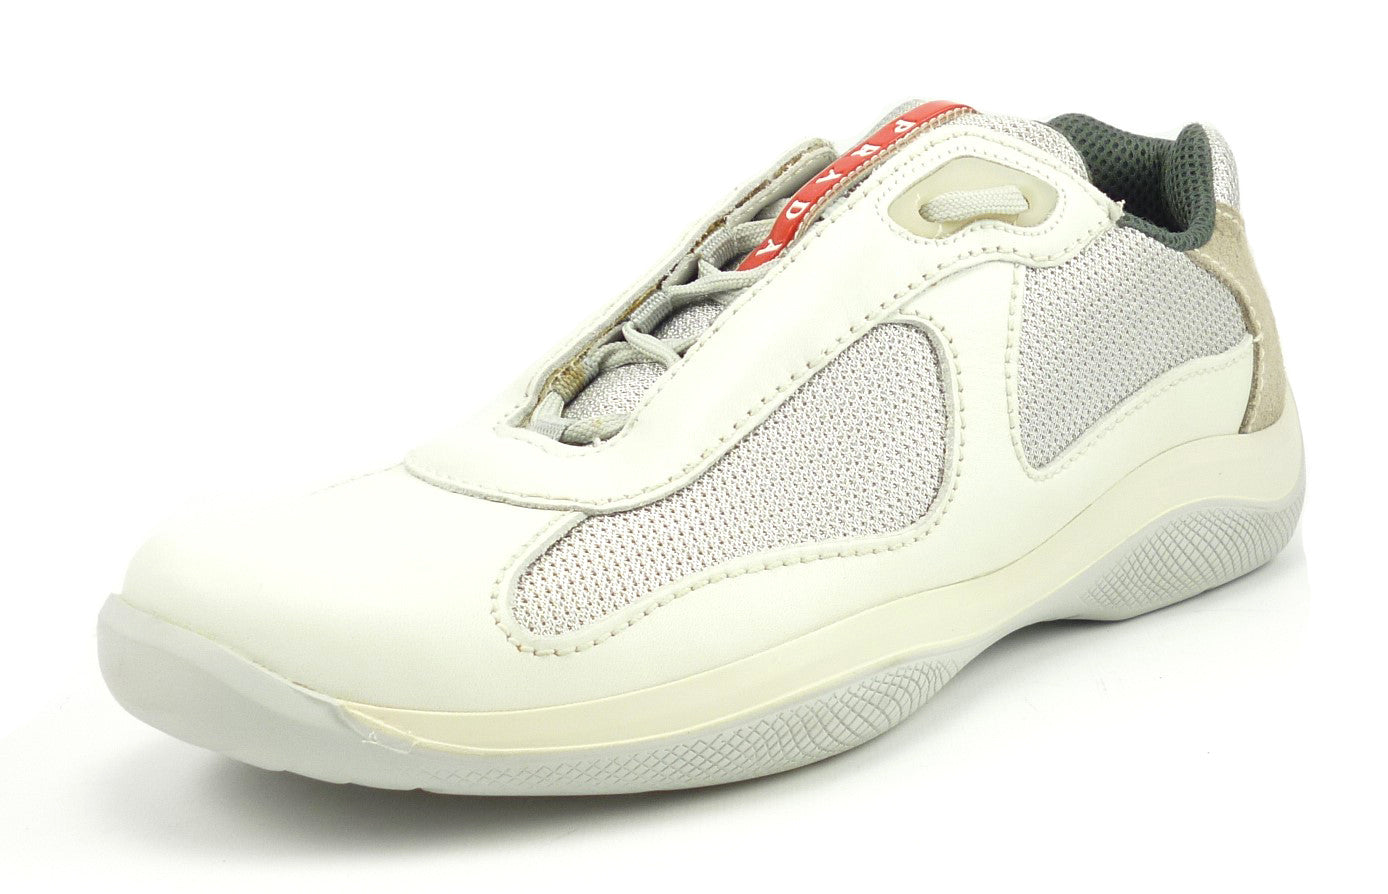 Prada New Mens Shoes Size 10.5, 11.5 US Punta Ala Leather & Mesh Sneakers White